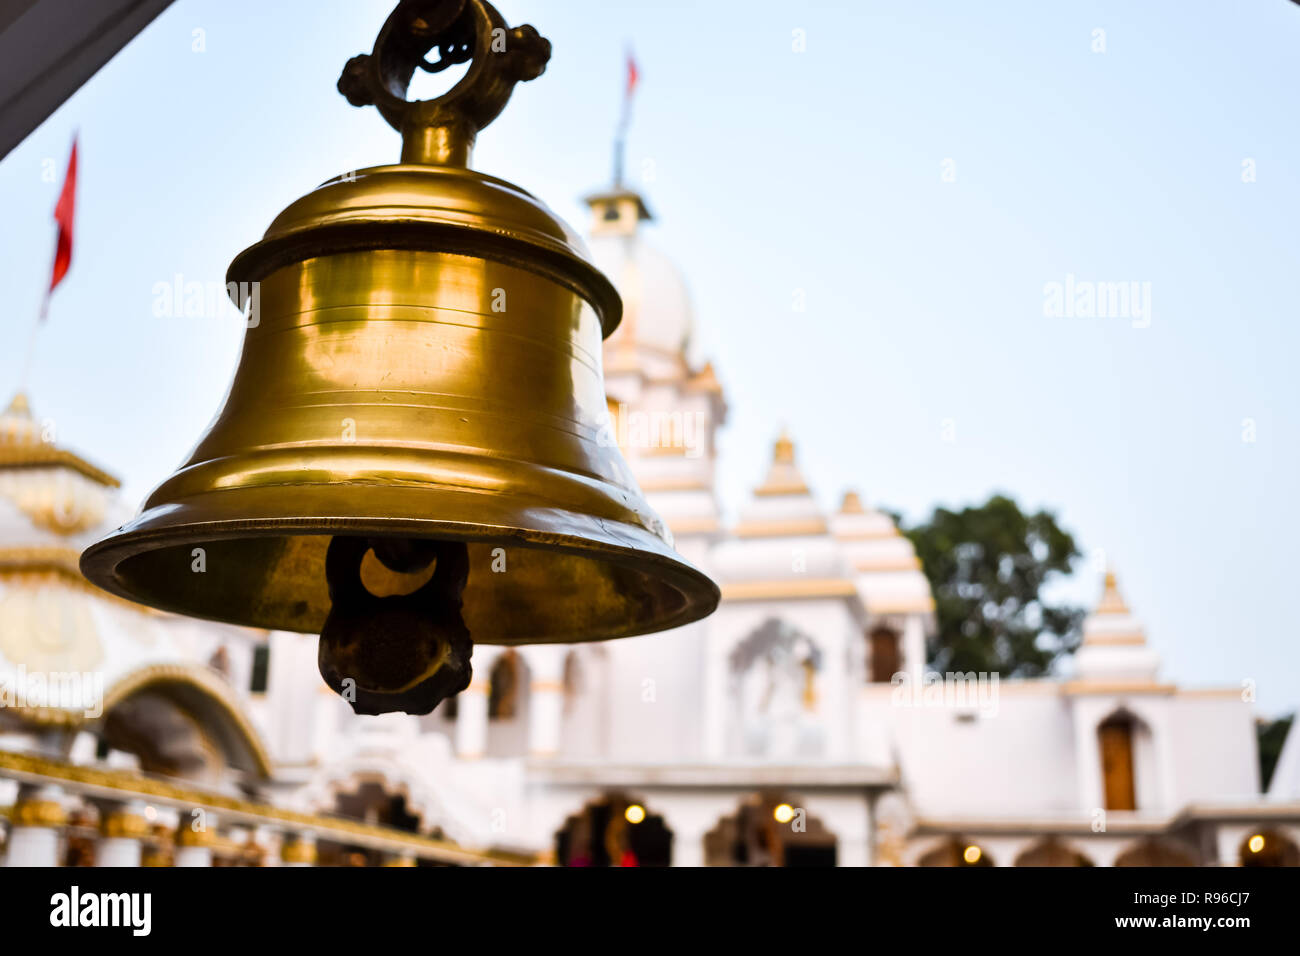 Ring bells in temple  Golden metal bell isolated  Big brass